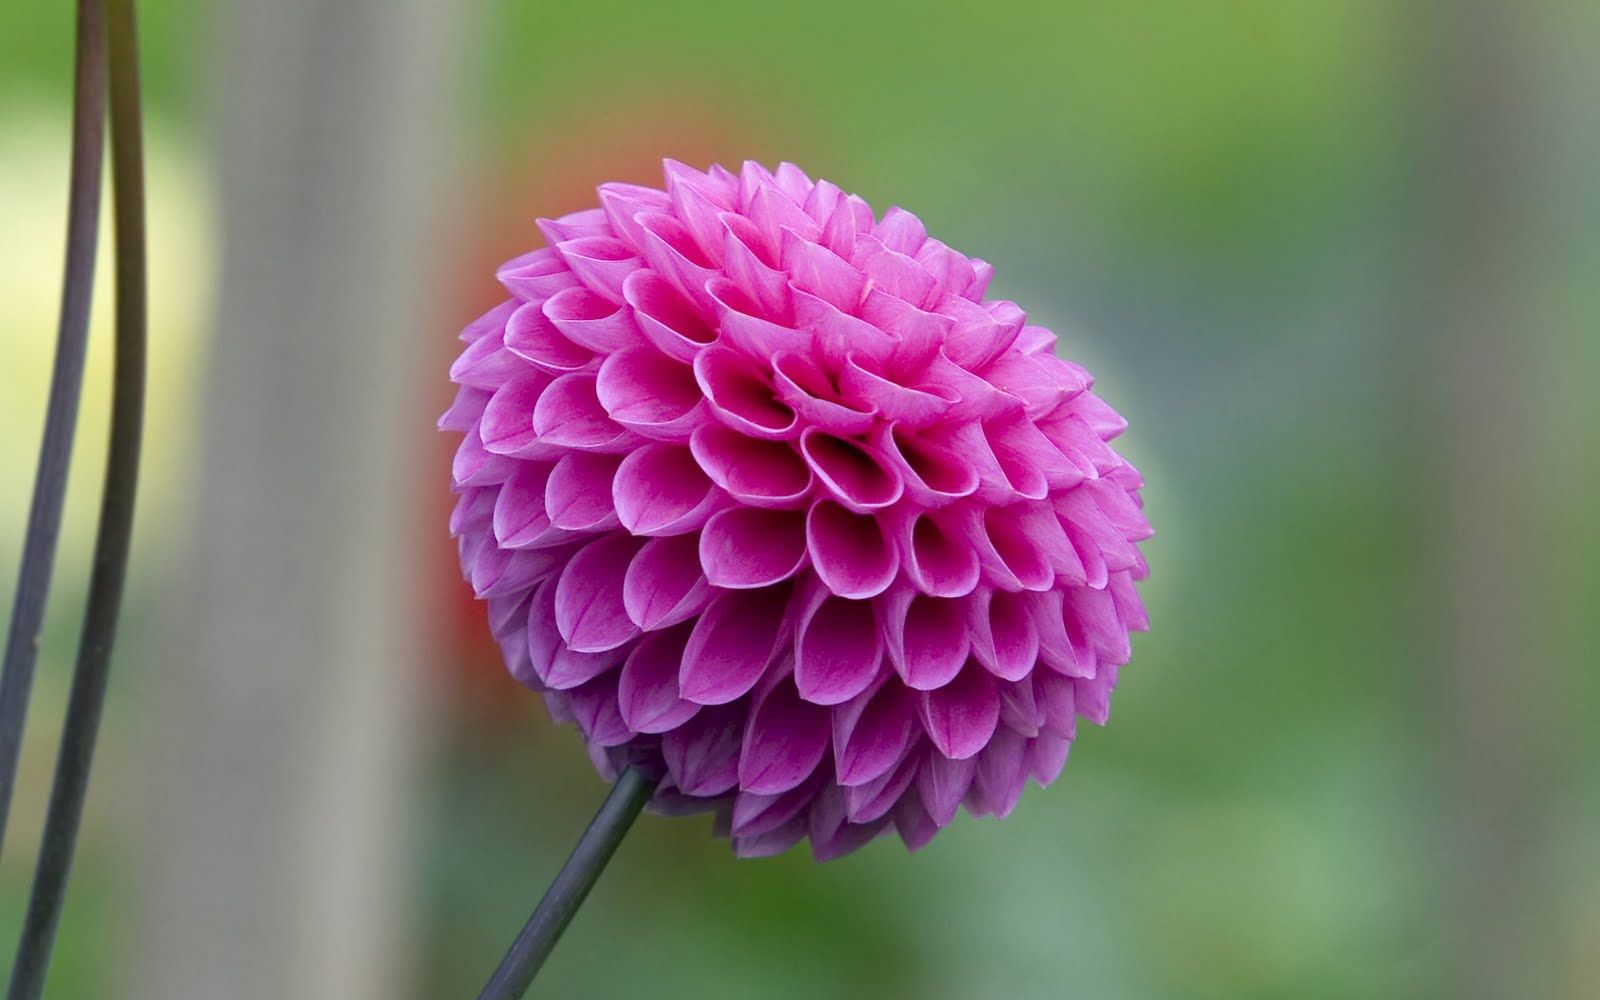 dahlia flower wallpaper